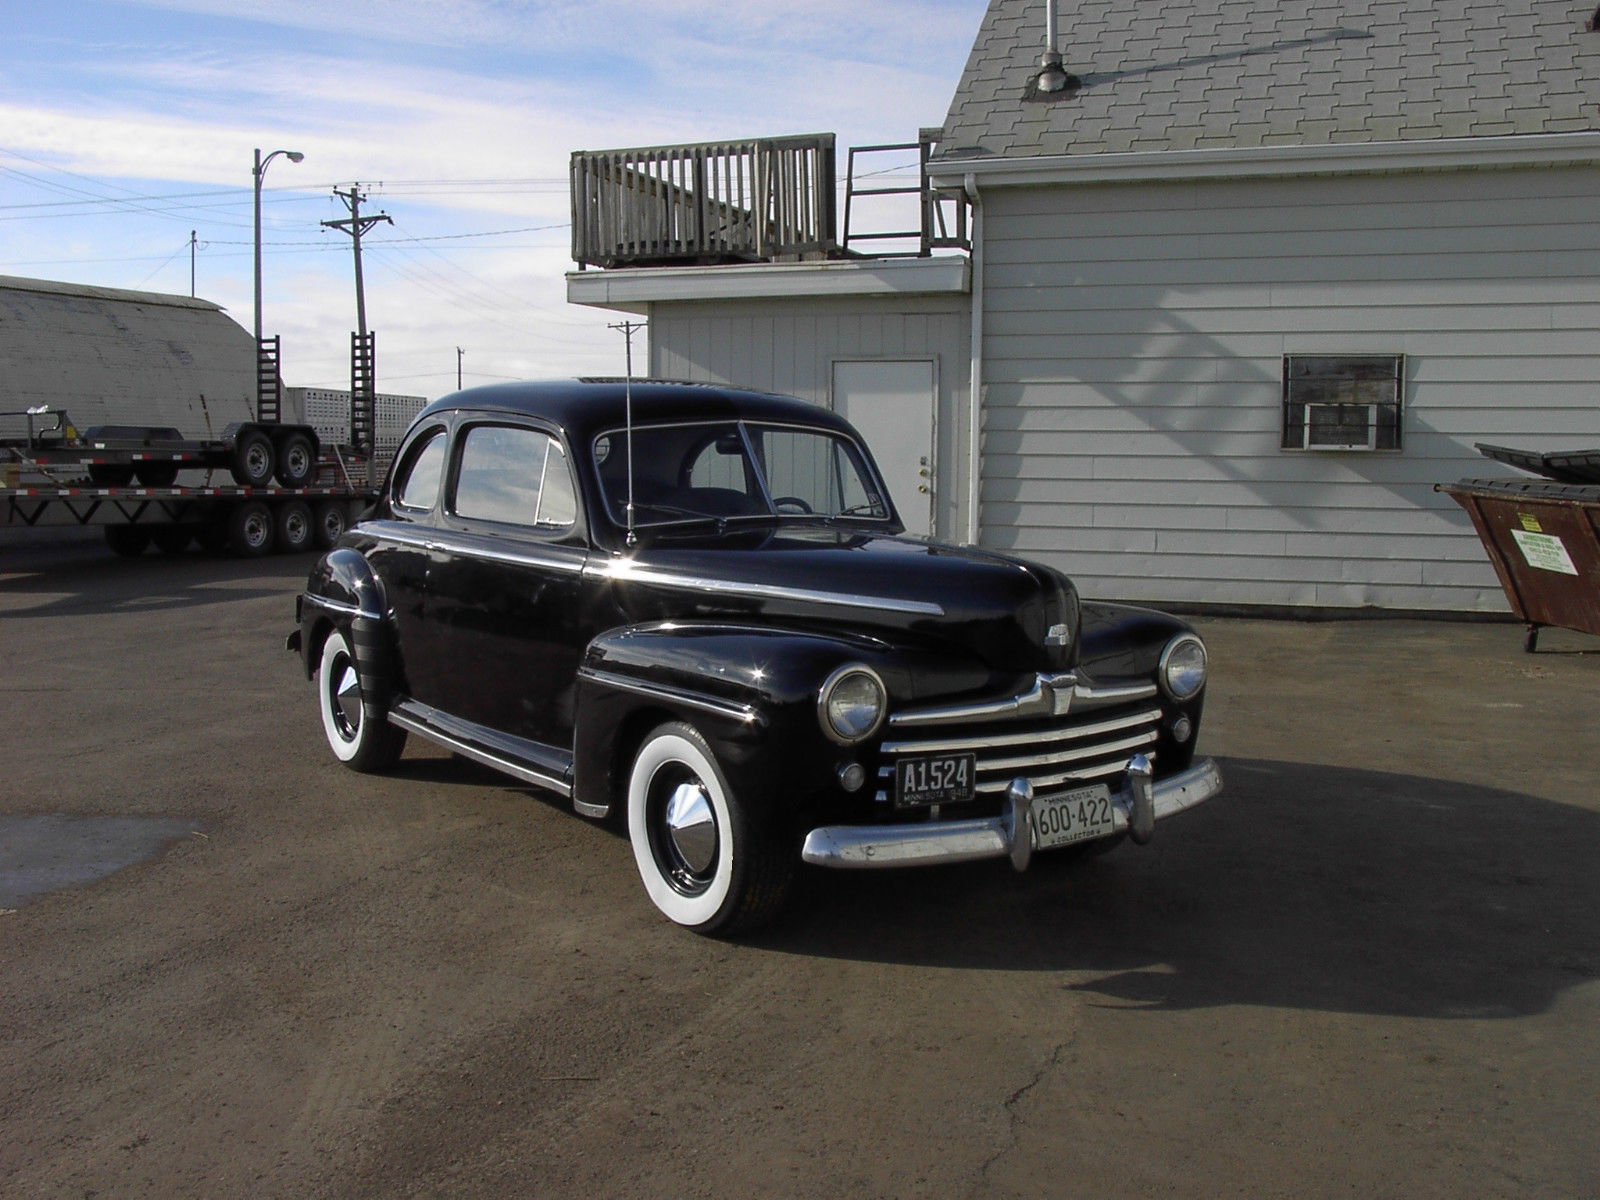 1948 48 Ford Flathead V8 3 Speed Coupe Hot Rod Black New Interior Pickup Other